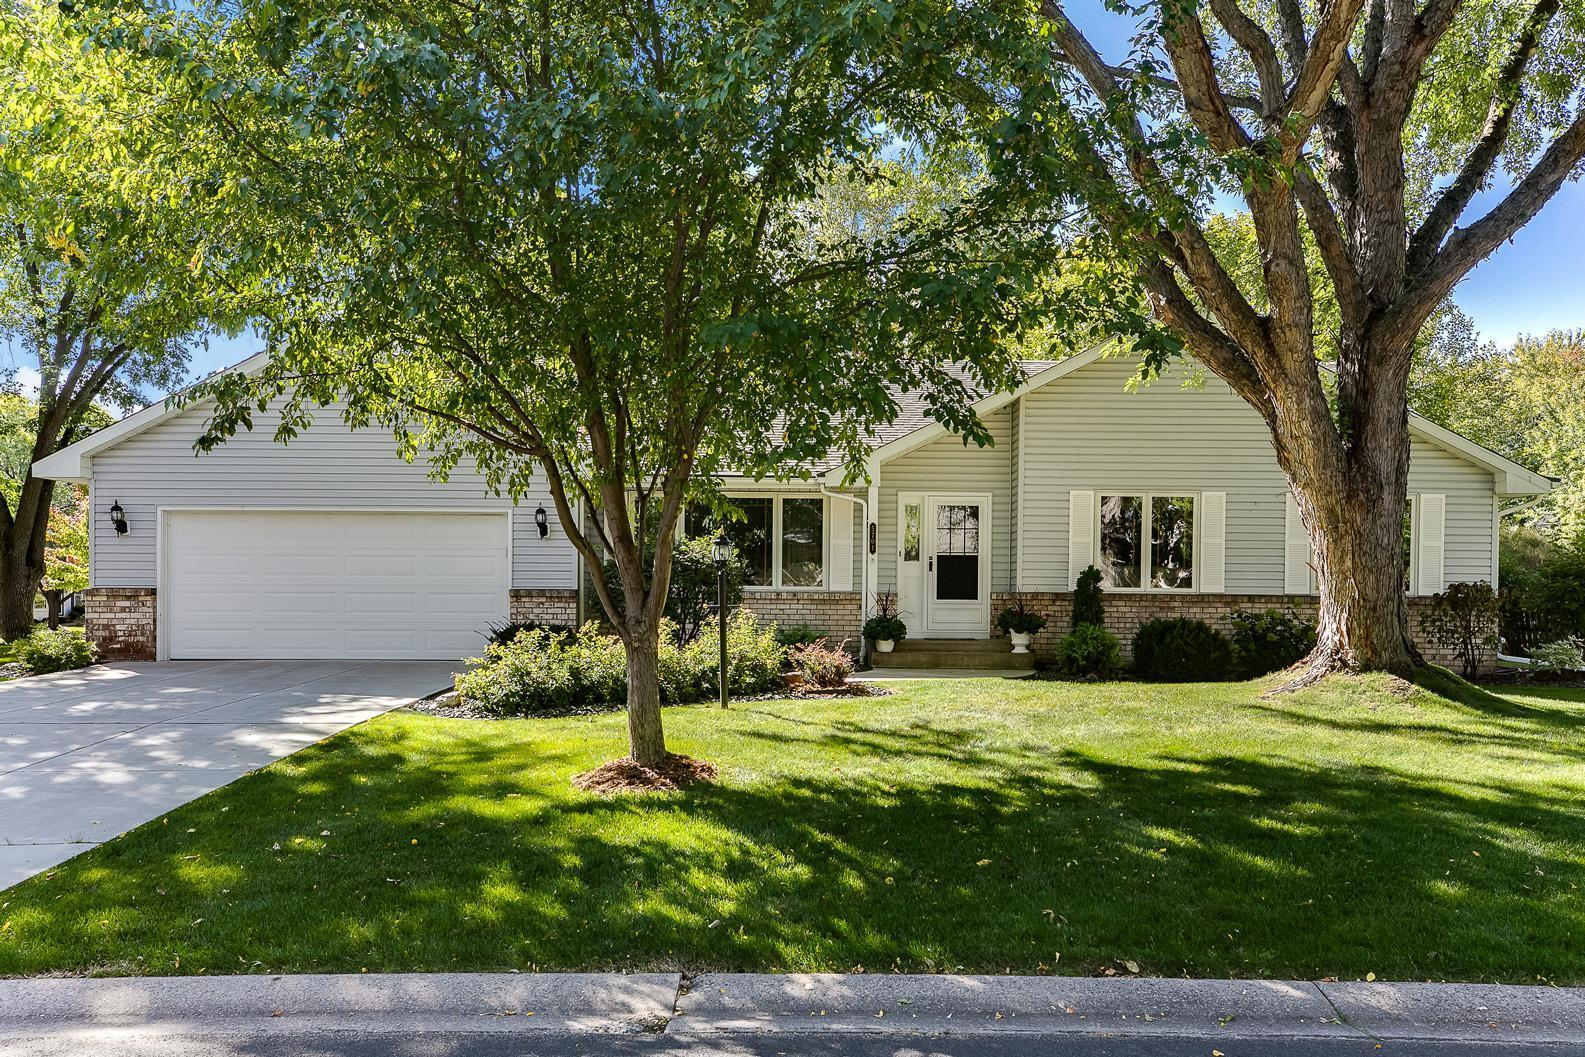 5701 W 99th Street Property Photo - Bloomington, MN real estate listing